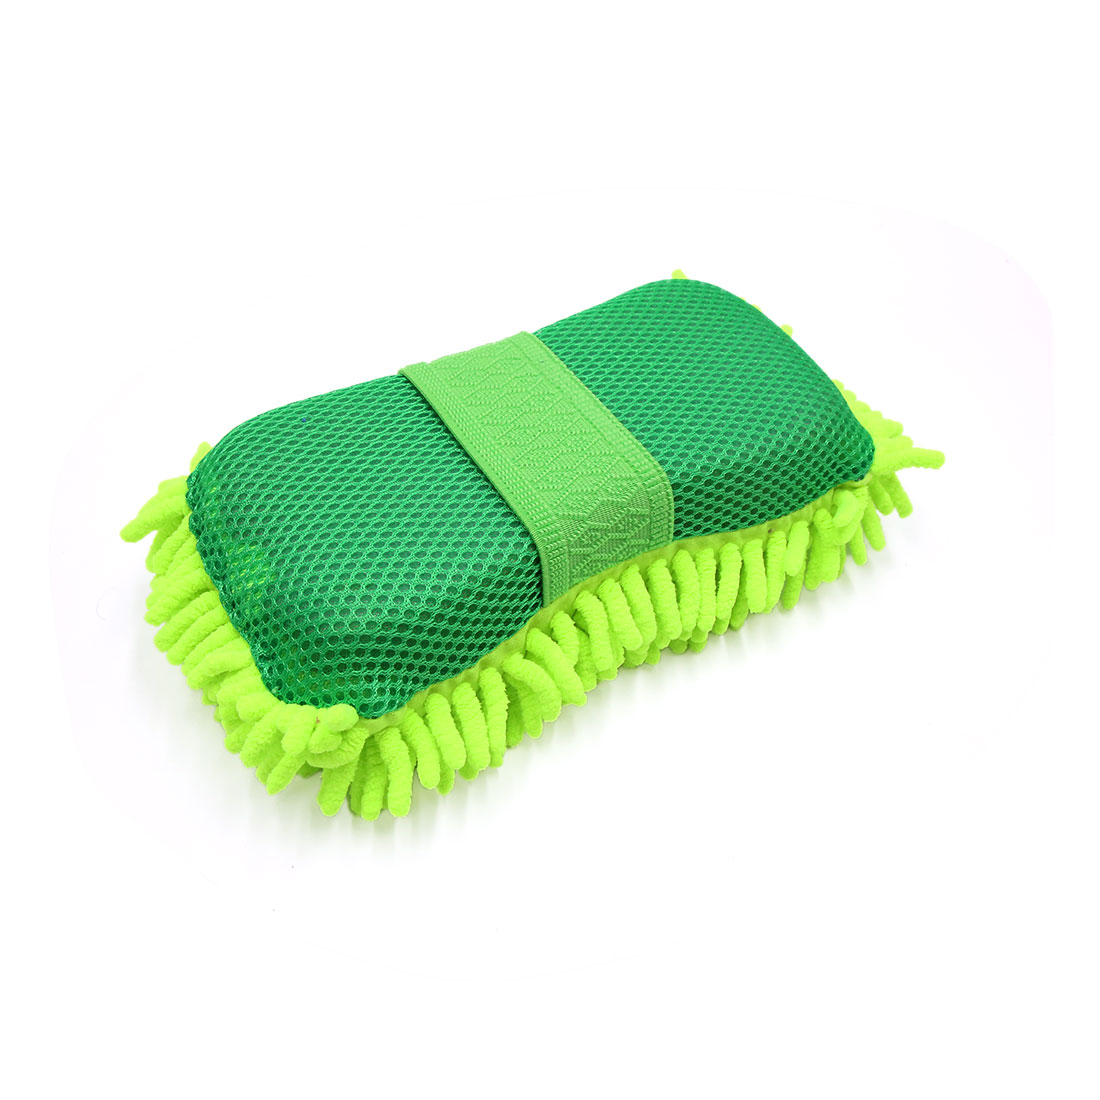 25 x 13 x 6.5cm Multi-Use Microfiber Chenille Washing Cleaning Sponge for Car